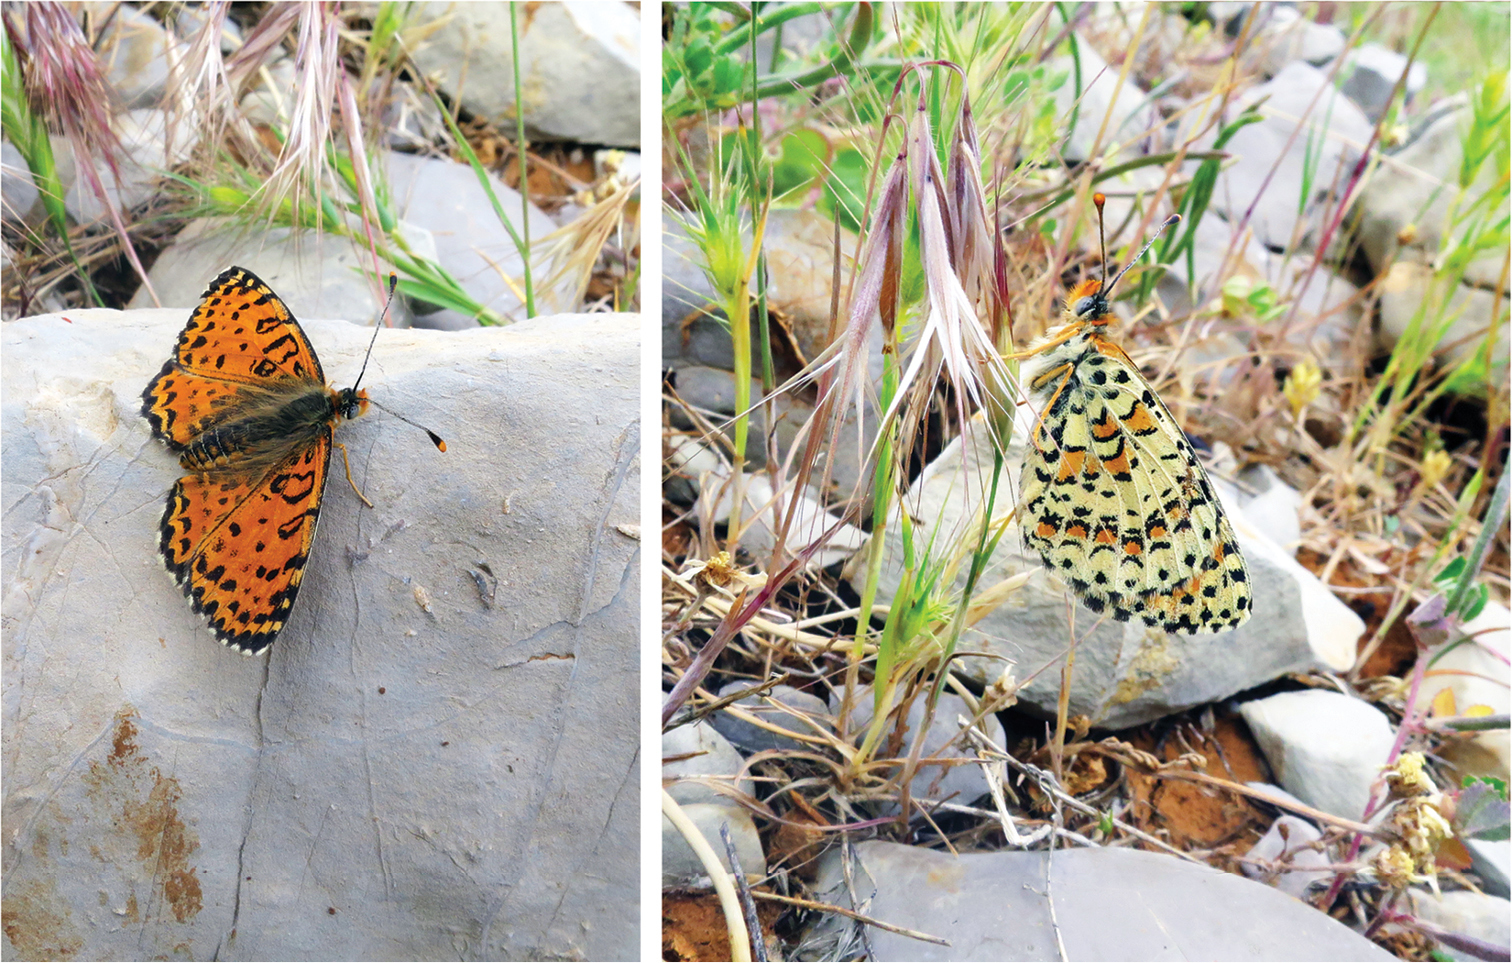 DNA barcode analysis reveals a new species of butterfly, the first in Israel in 109 years.